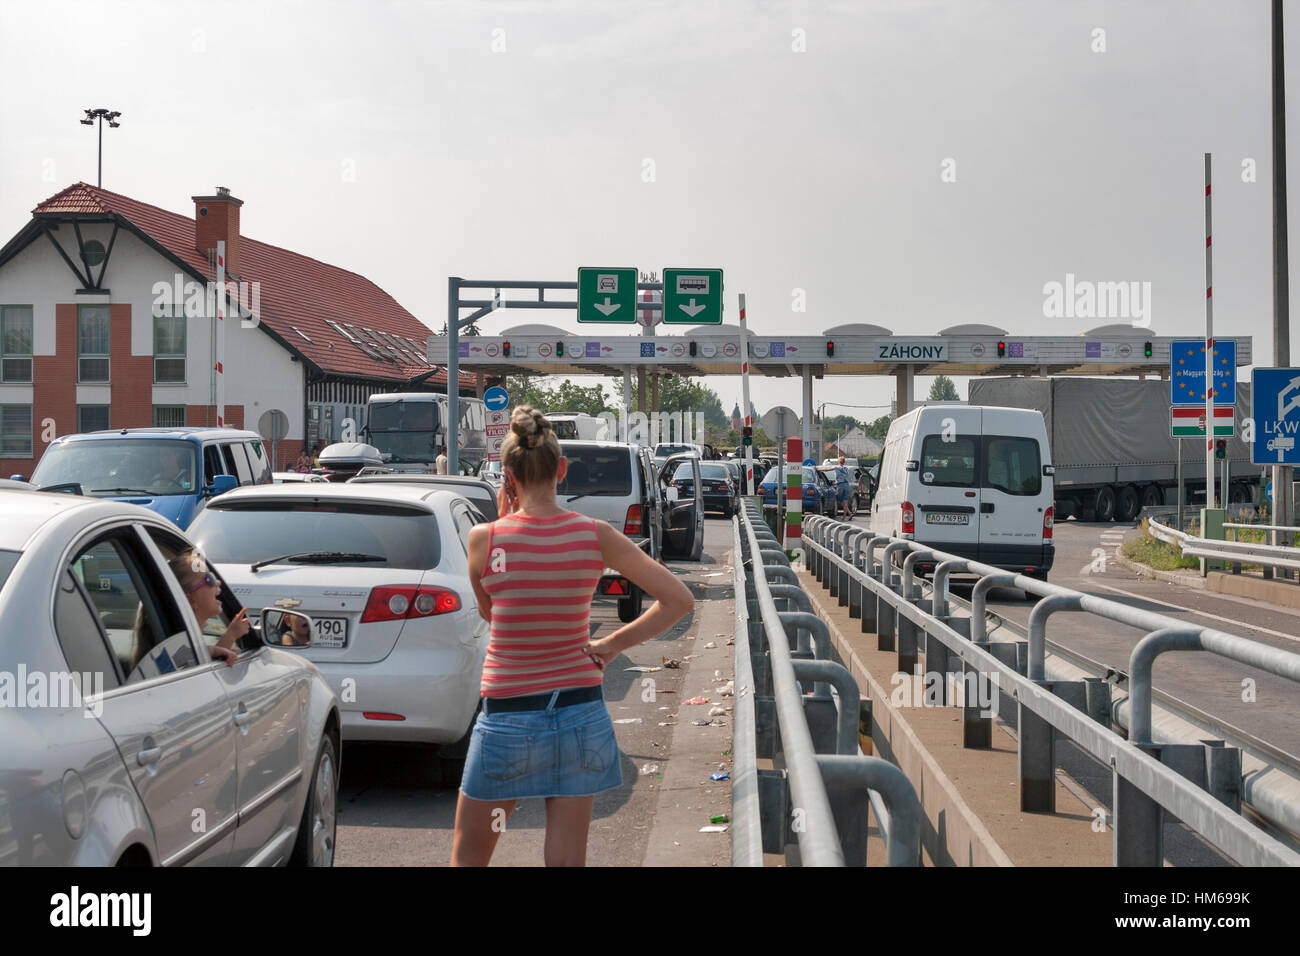 Zahony, Hungary - August 05, 2012: Traffic jams on the Ukrainian-Hungarian border (between Chop and Zahony) customs - Stock Image